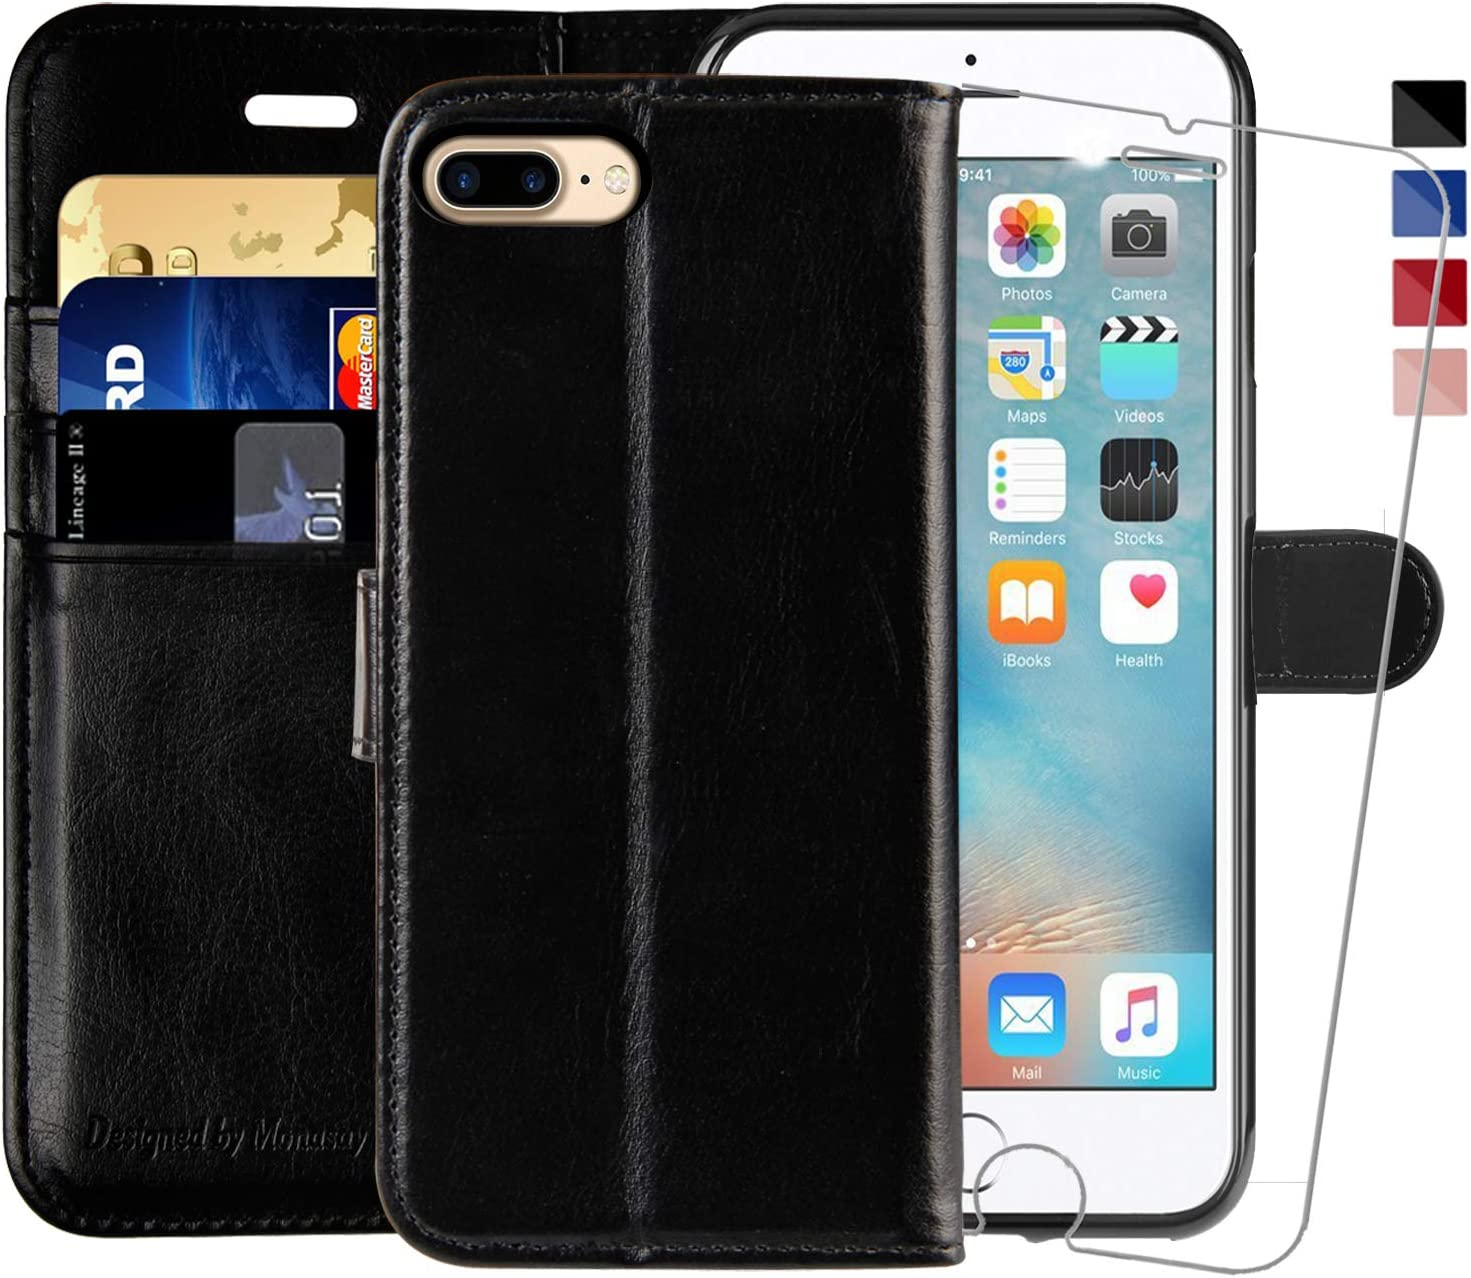 iPhone 7 Plus Wallet Case/iPhone 8 Plus Wallet Case,5.5-inch,MONASAY [Glass Screen Protector Included] Flip Folio Leather Cell Phone Cover with Credit Card Holder (Black1)